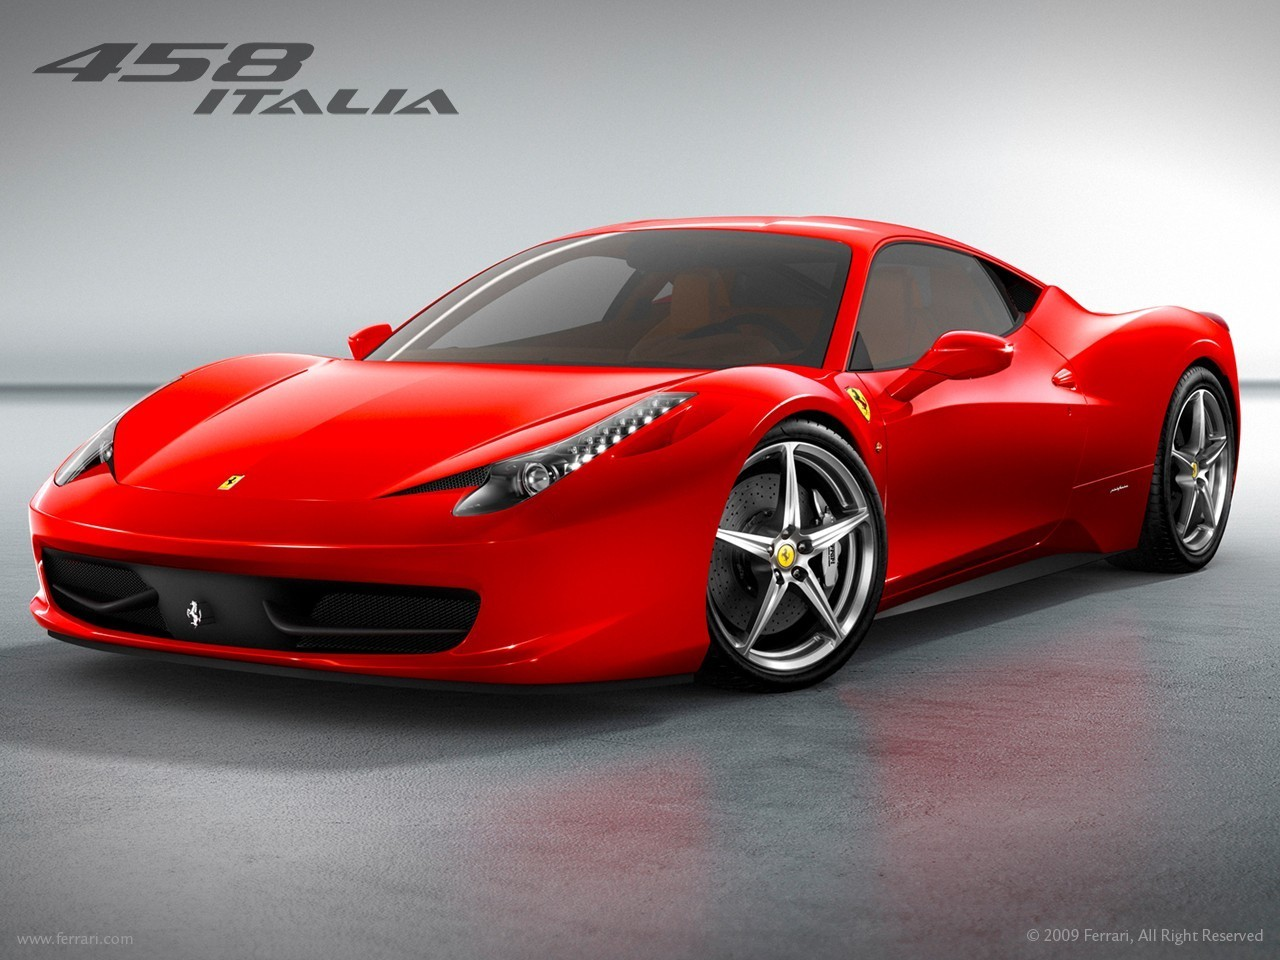 farrari - Sports Cars Wallpaper (13821367) - Fanpop